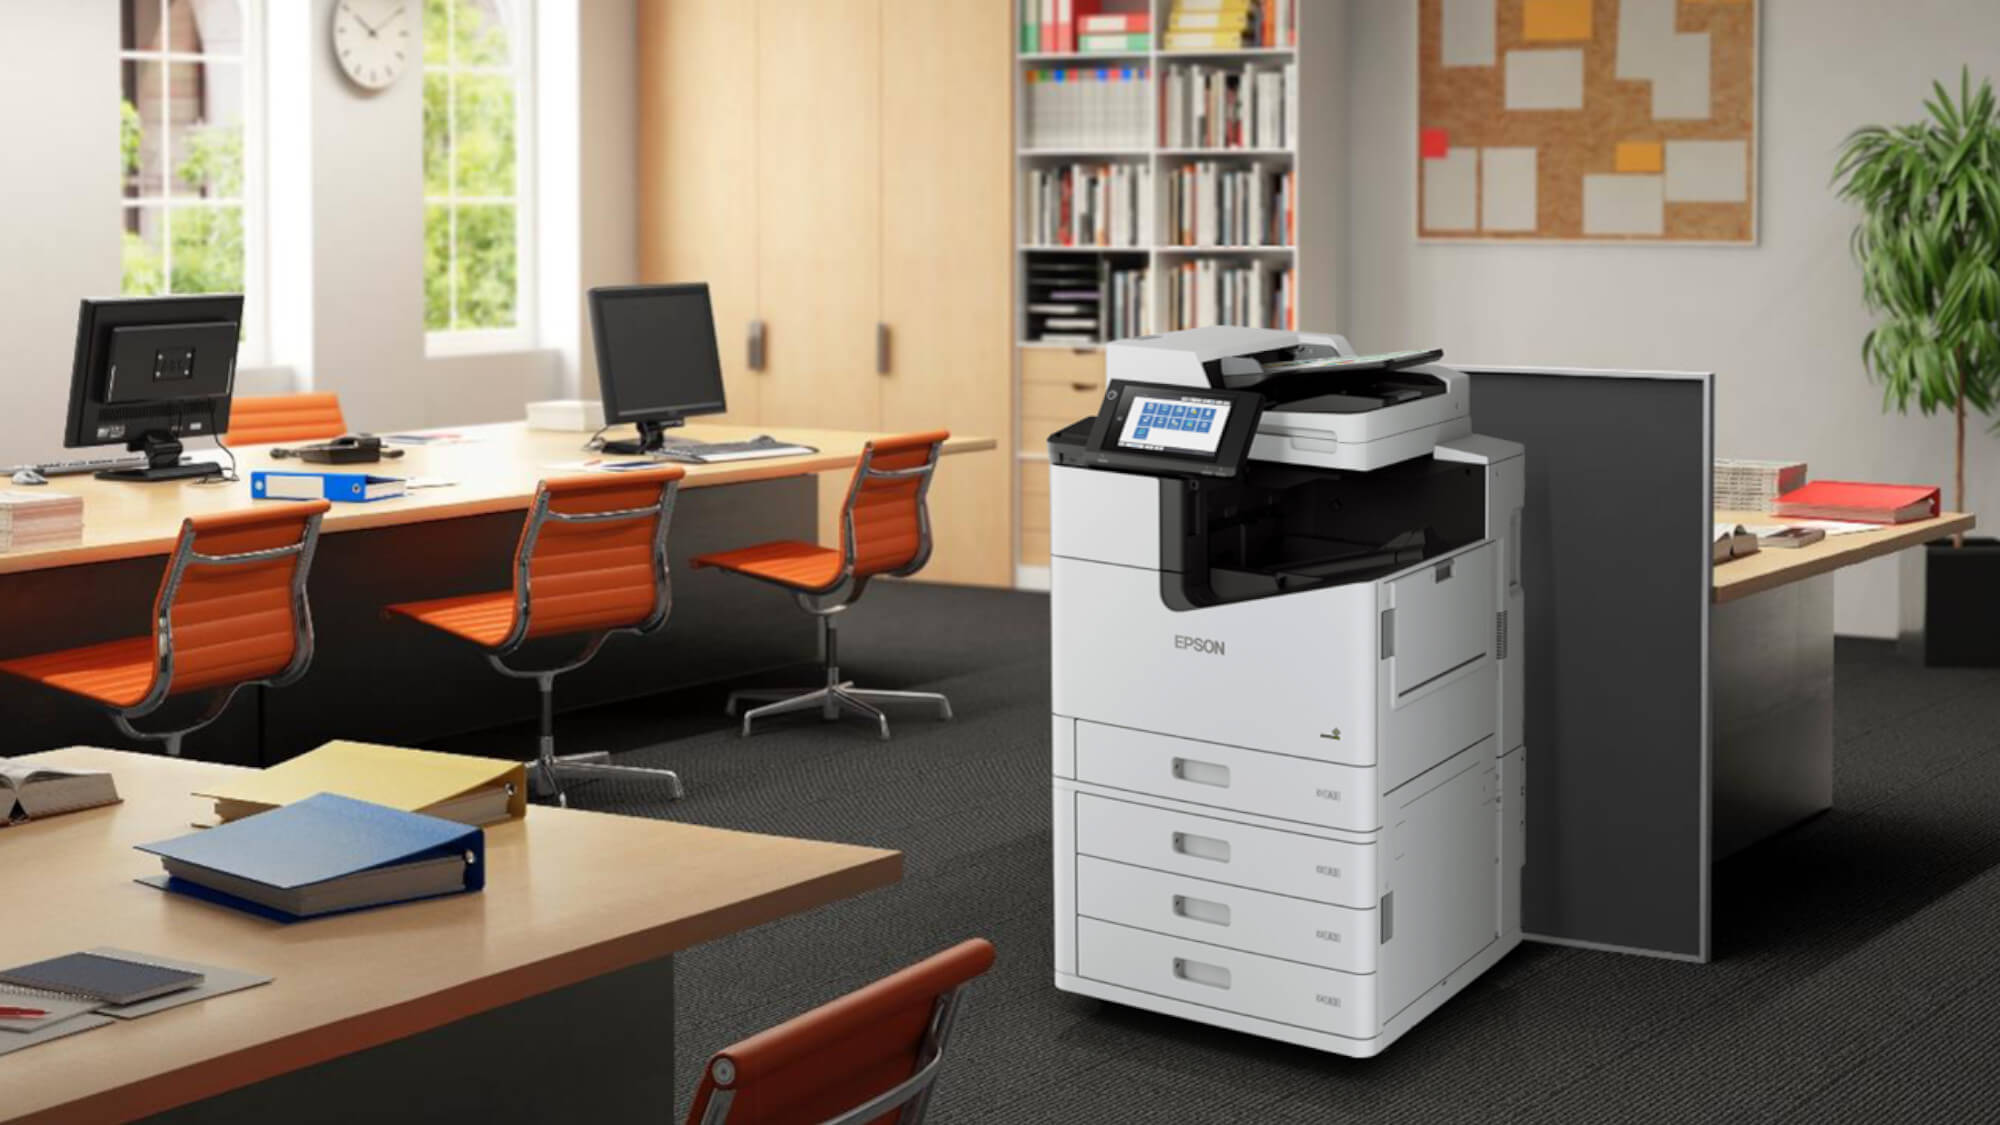 Epson Enterprise A3 Printer insitu (small Office)